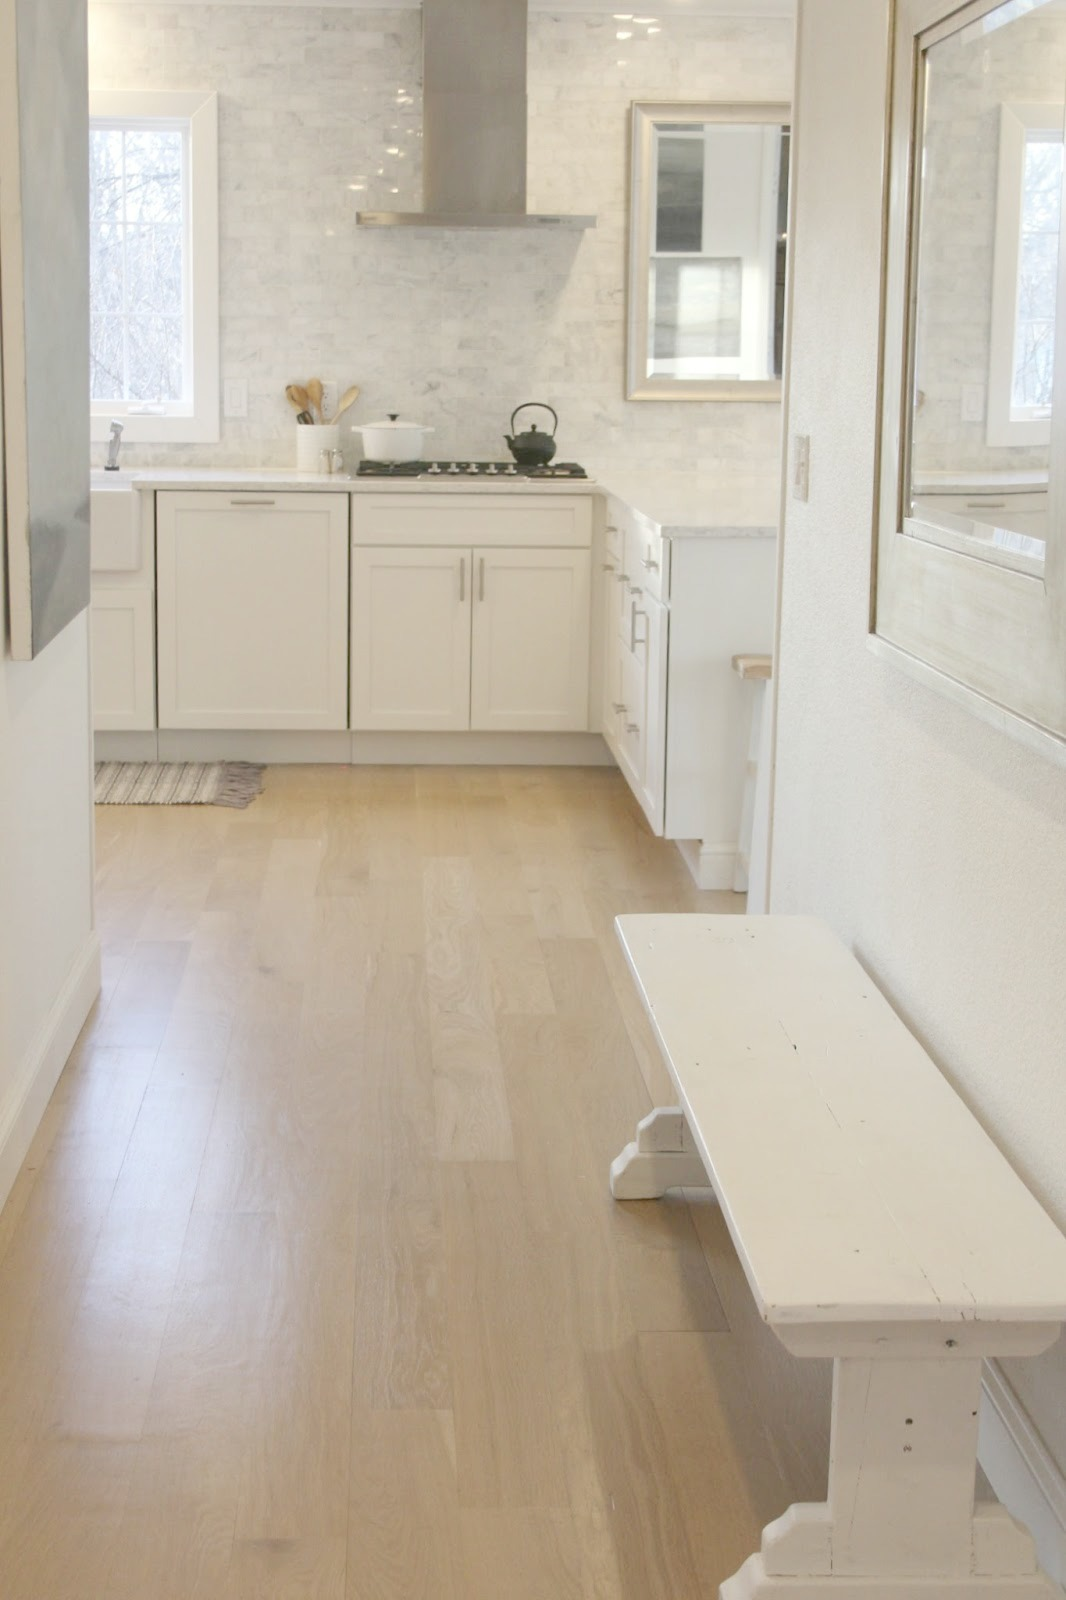 Serene white kitchen with modern farmhouse style, white oak hardwood floor, and quartz countertop